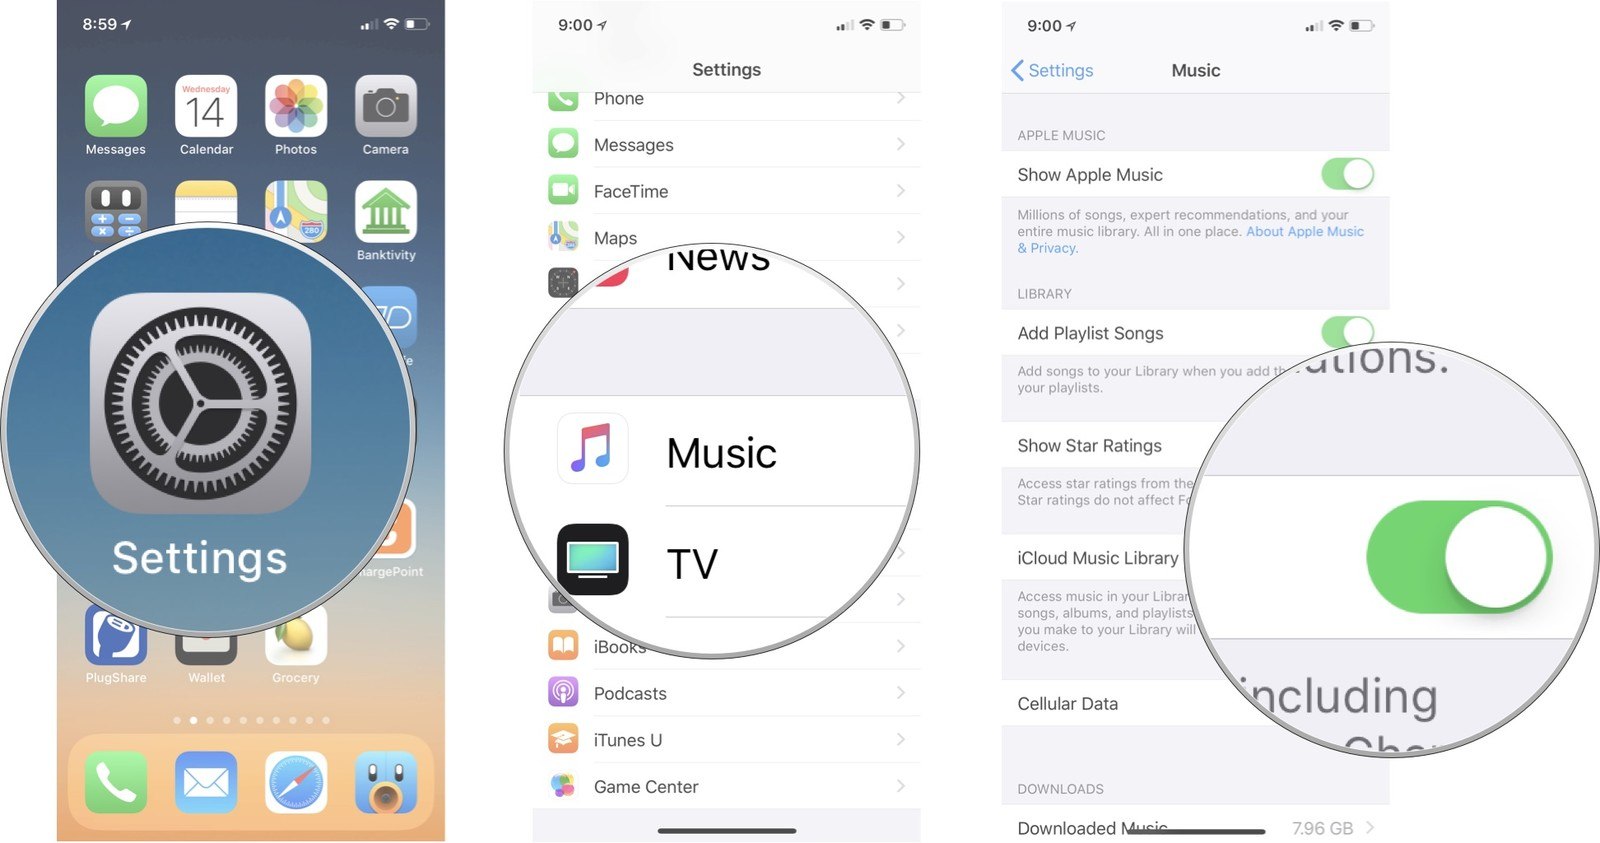 Open settings, tap Music, then turn on iCloud Music Library